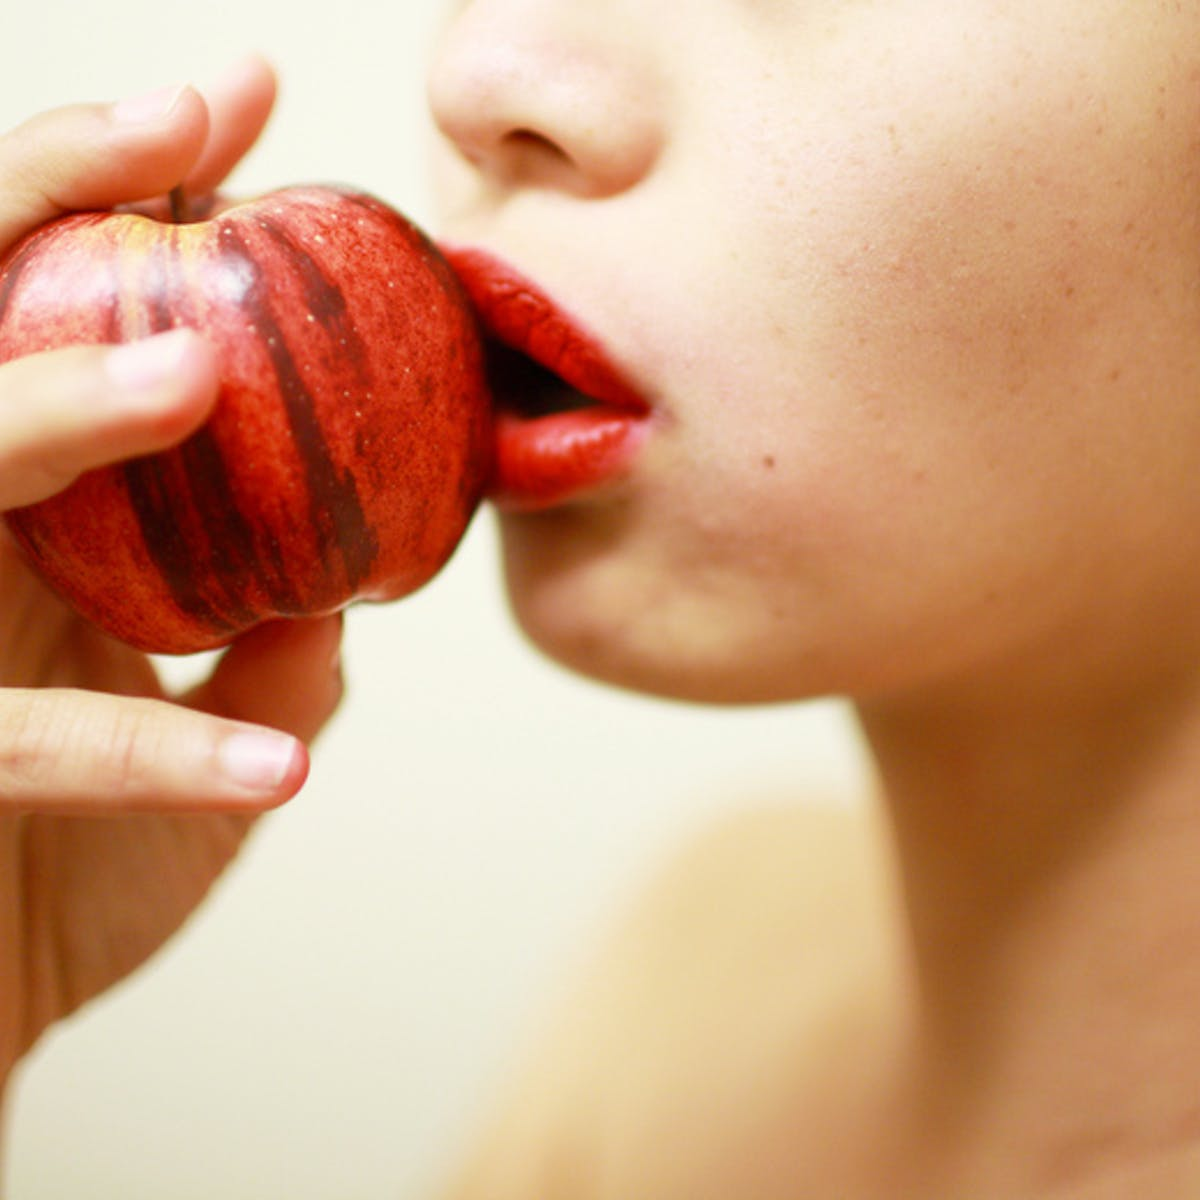 Sexual cannibalism: a treat you can eat